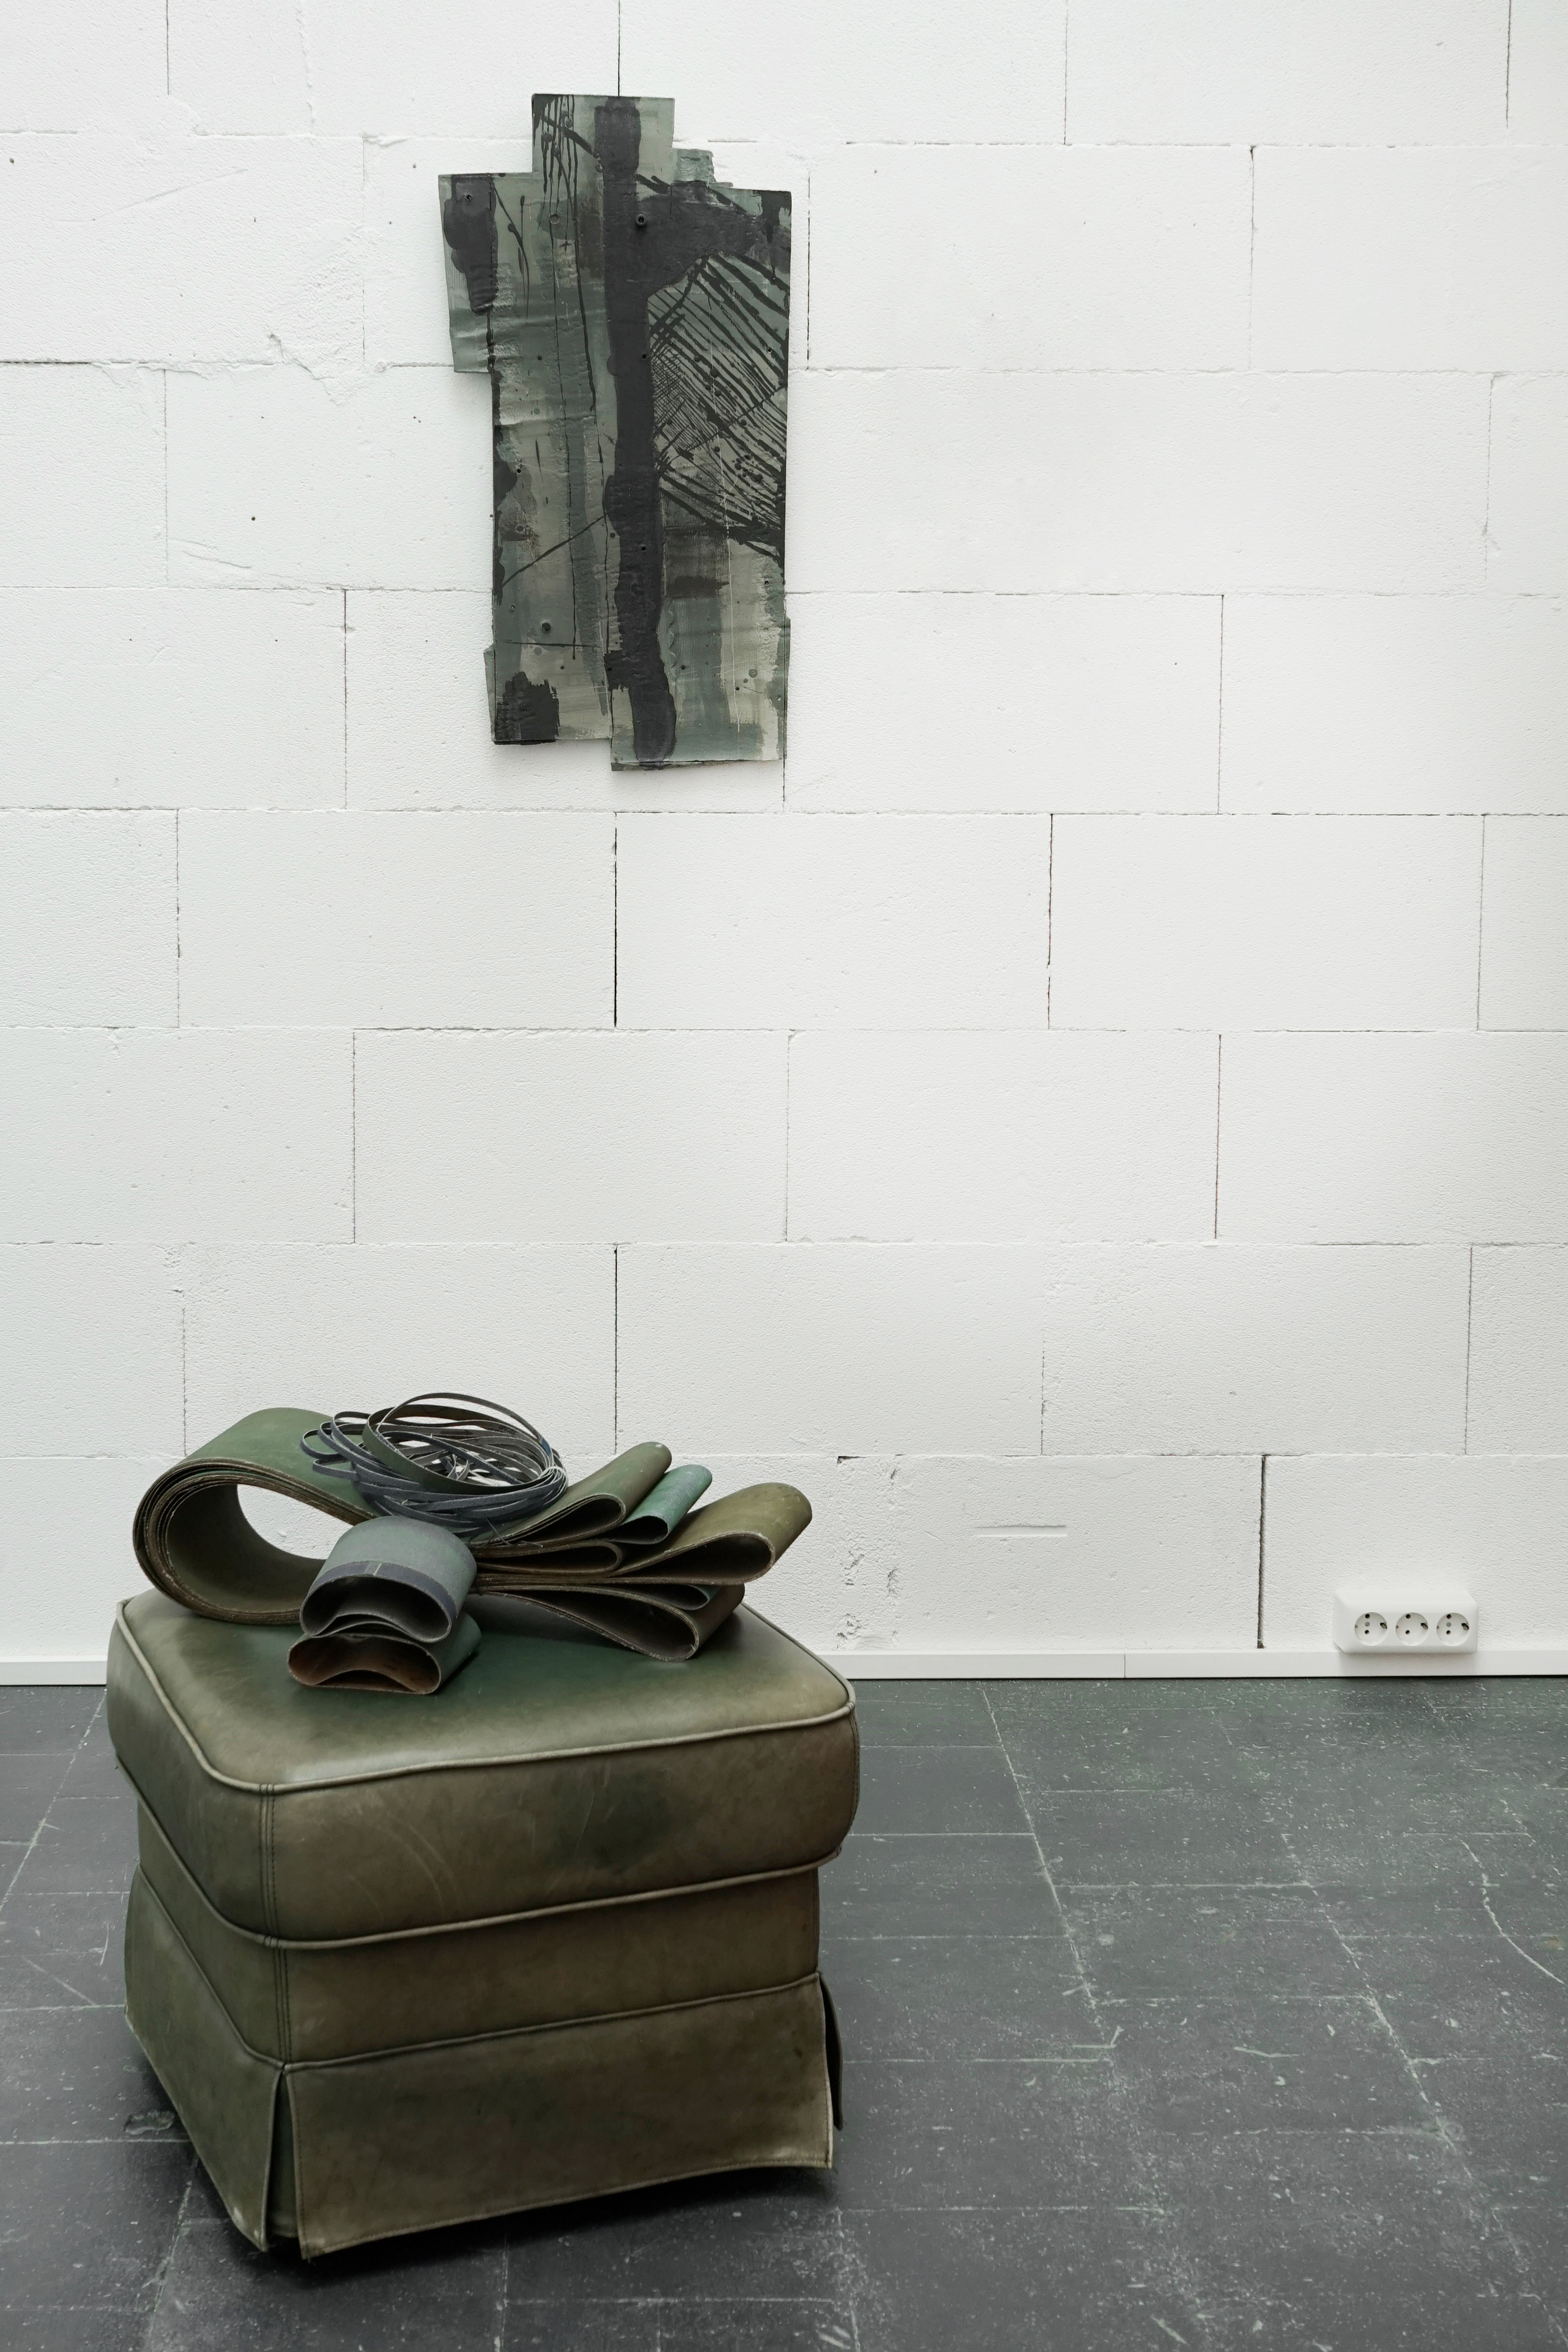 Galerie Barbara Thumm \ Sarah Entwistle – Showroom